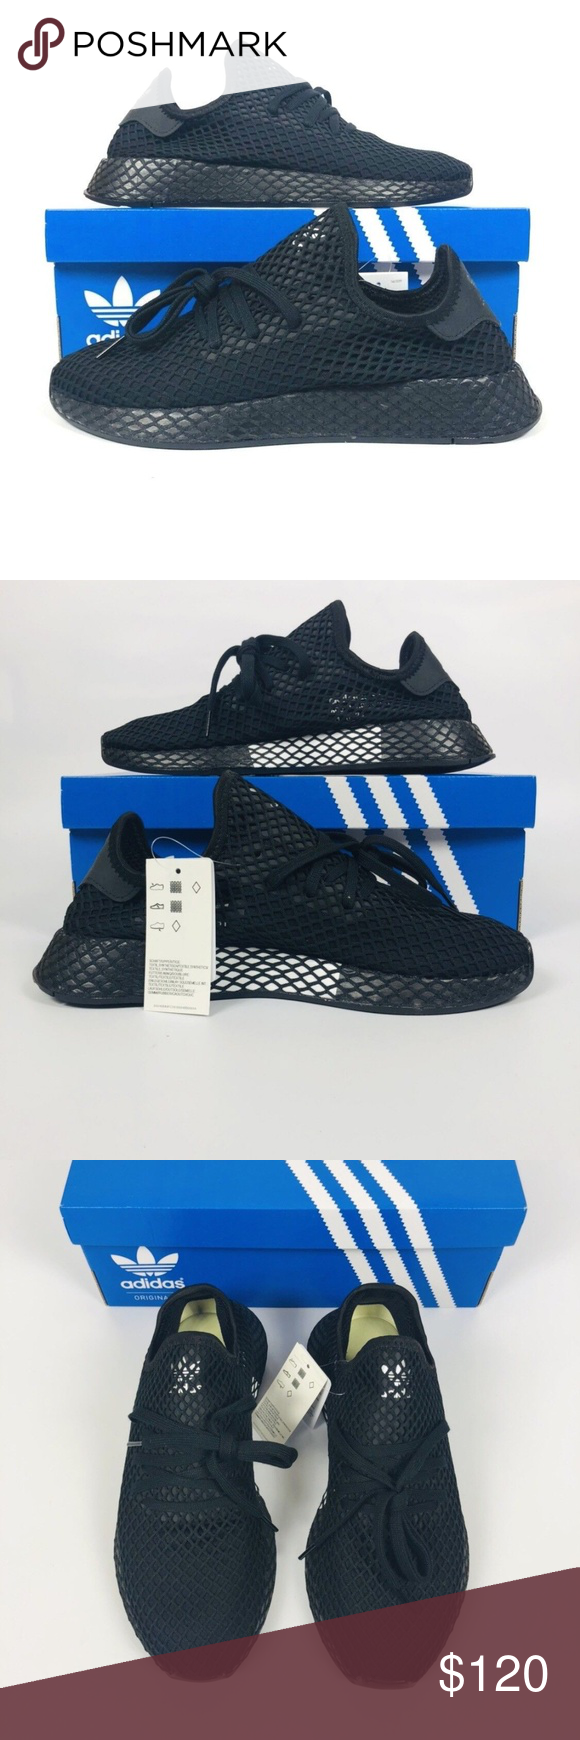 sports shoes 912d1 b2598 adidas Originals Deerupt Runner adidas Originals Deerupt Runner Men s Black  Black White B41768 NEW New With Box Shipped Double Boxed adidas Shoes  Sneakers